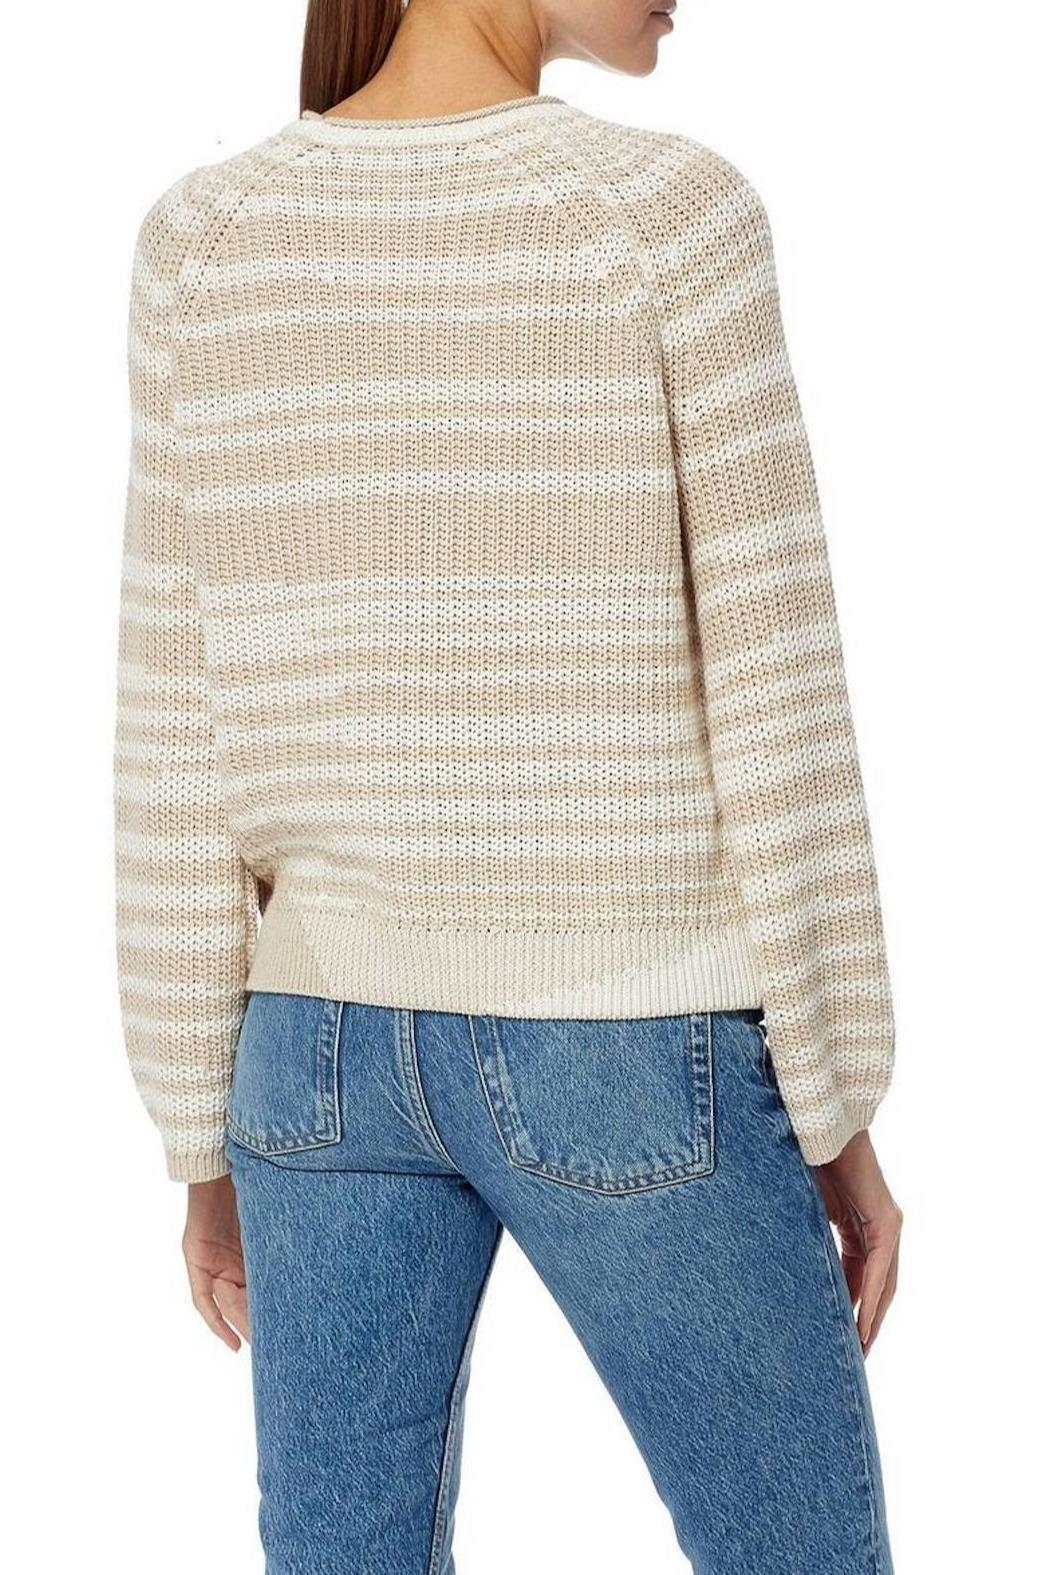 360 Cashmere Amethyst Sweater - Side Cropped Image